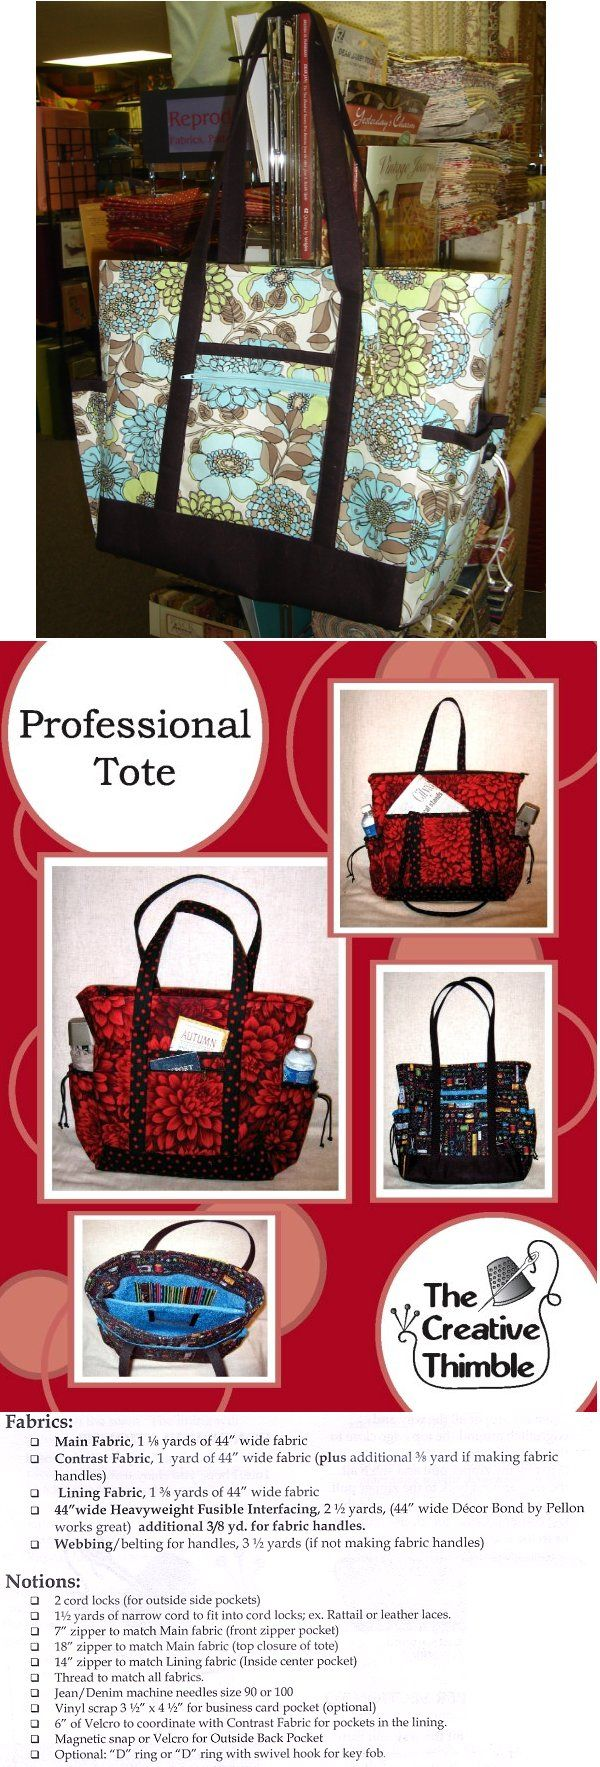 Professional tote bag pattern. Pockets inside and outside, including water bottle pouches on side. http://www.ericas.com/sewing/patterns/39059b.jpg